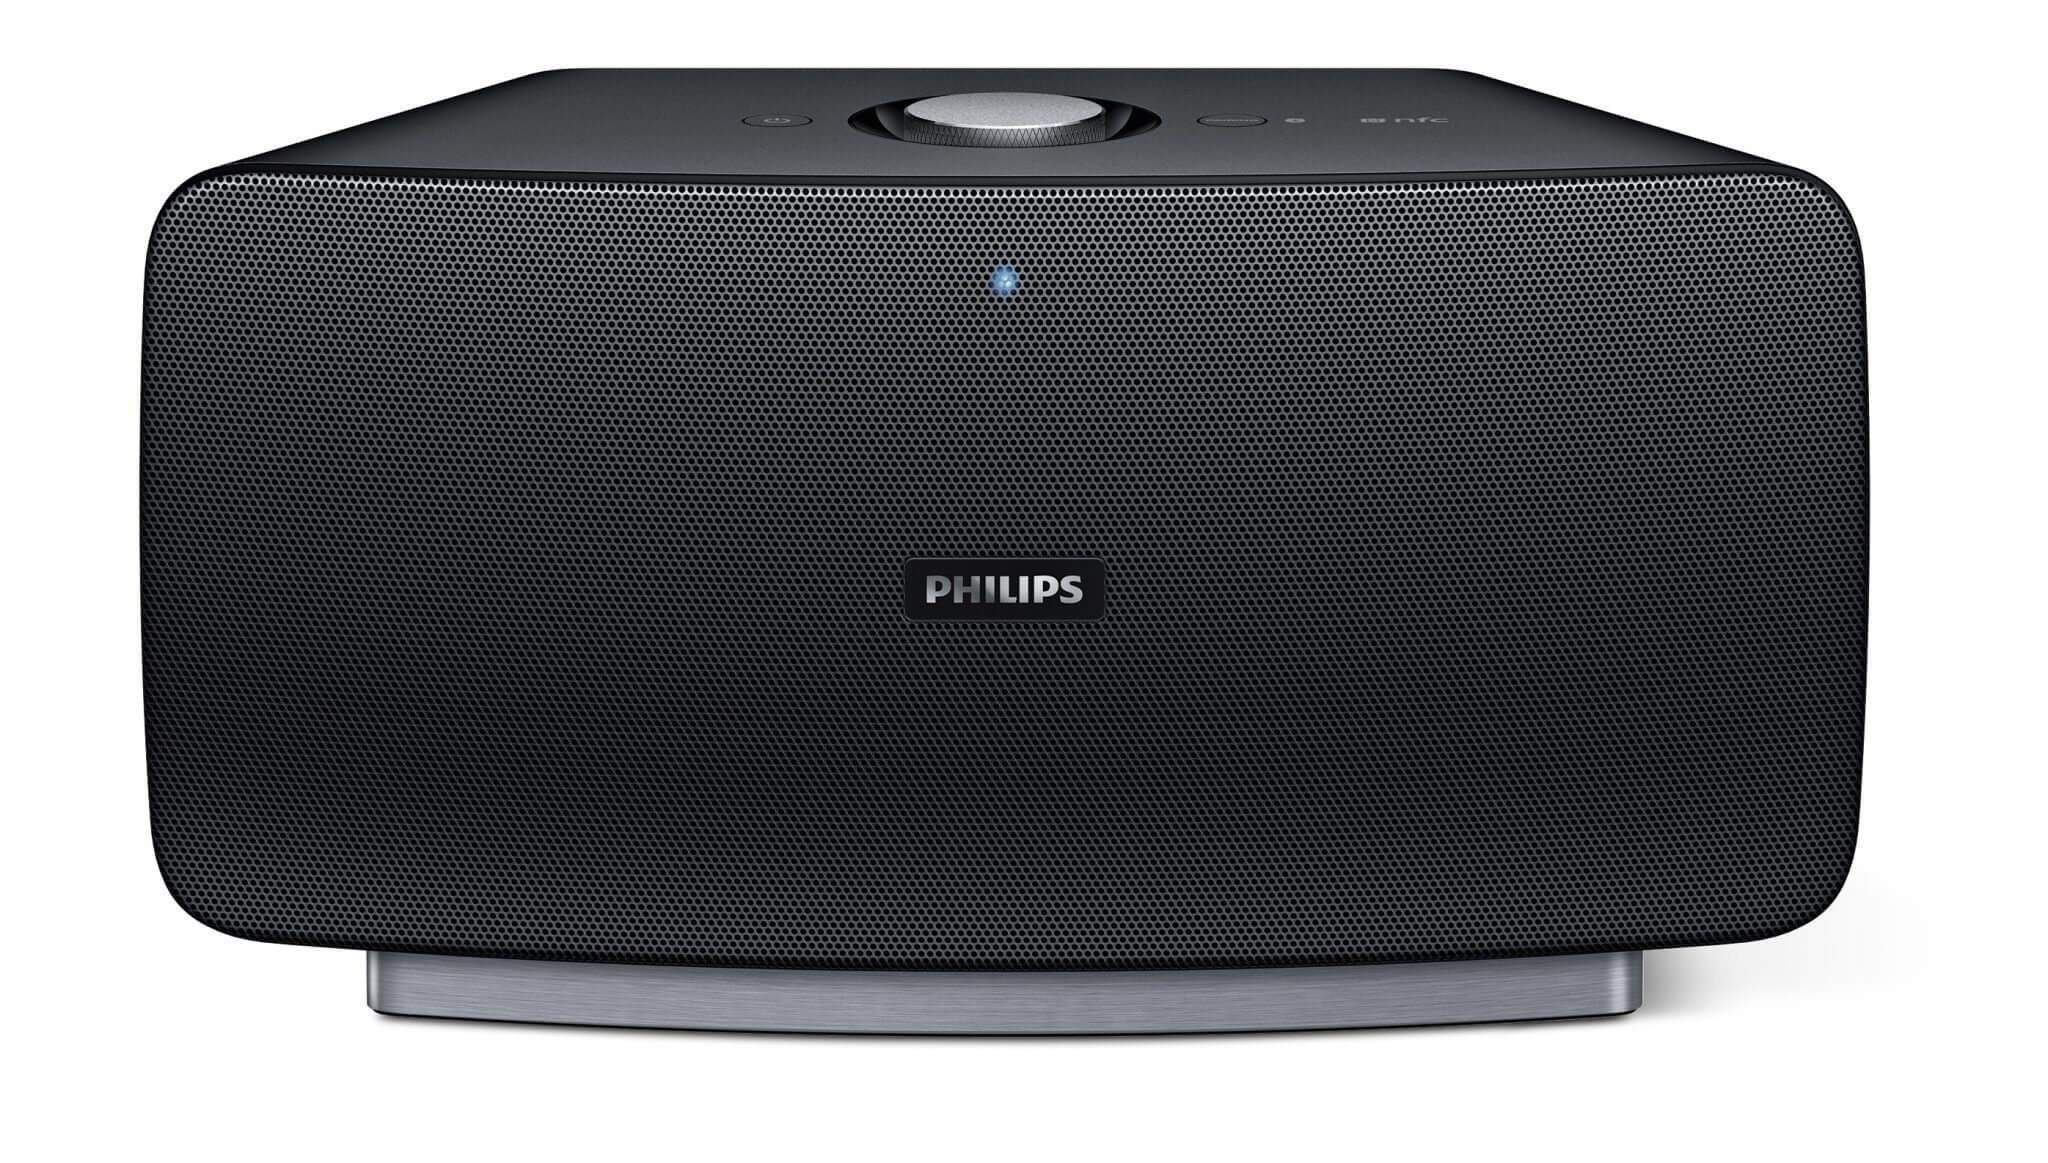 29 04855 2015 3 - Review: caixa de Som Bluetooth Philips BT7500